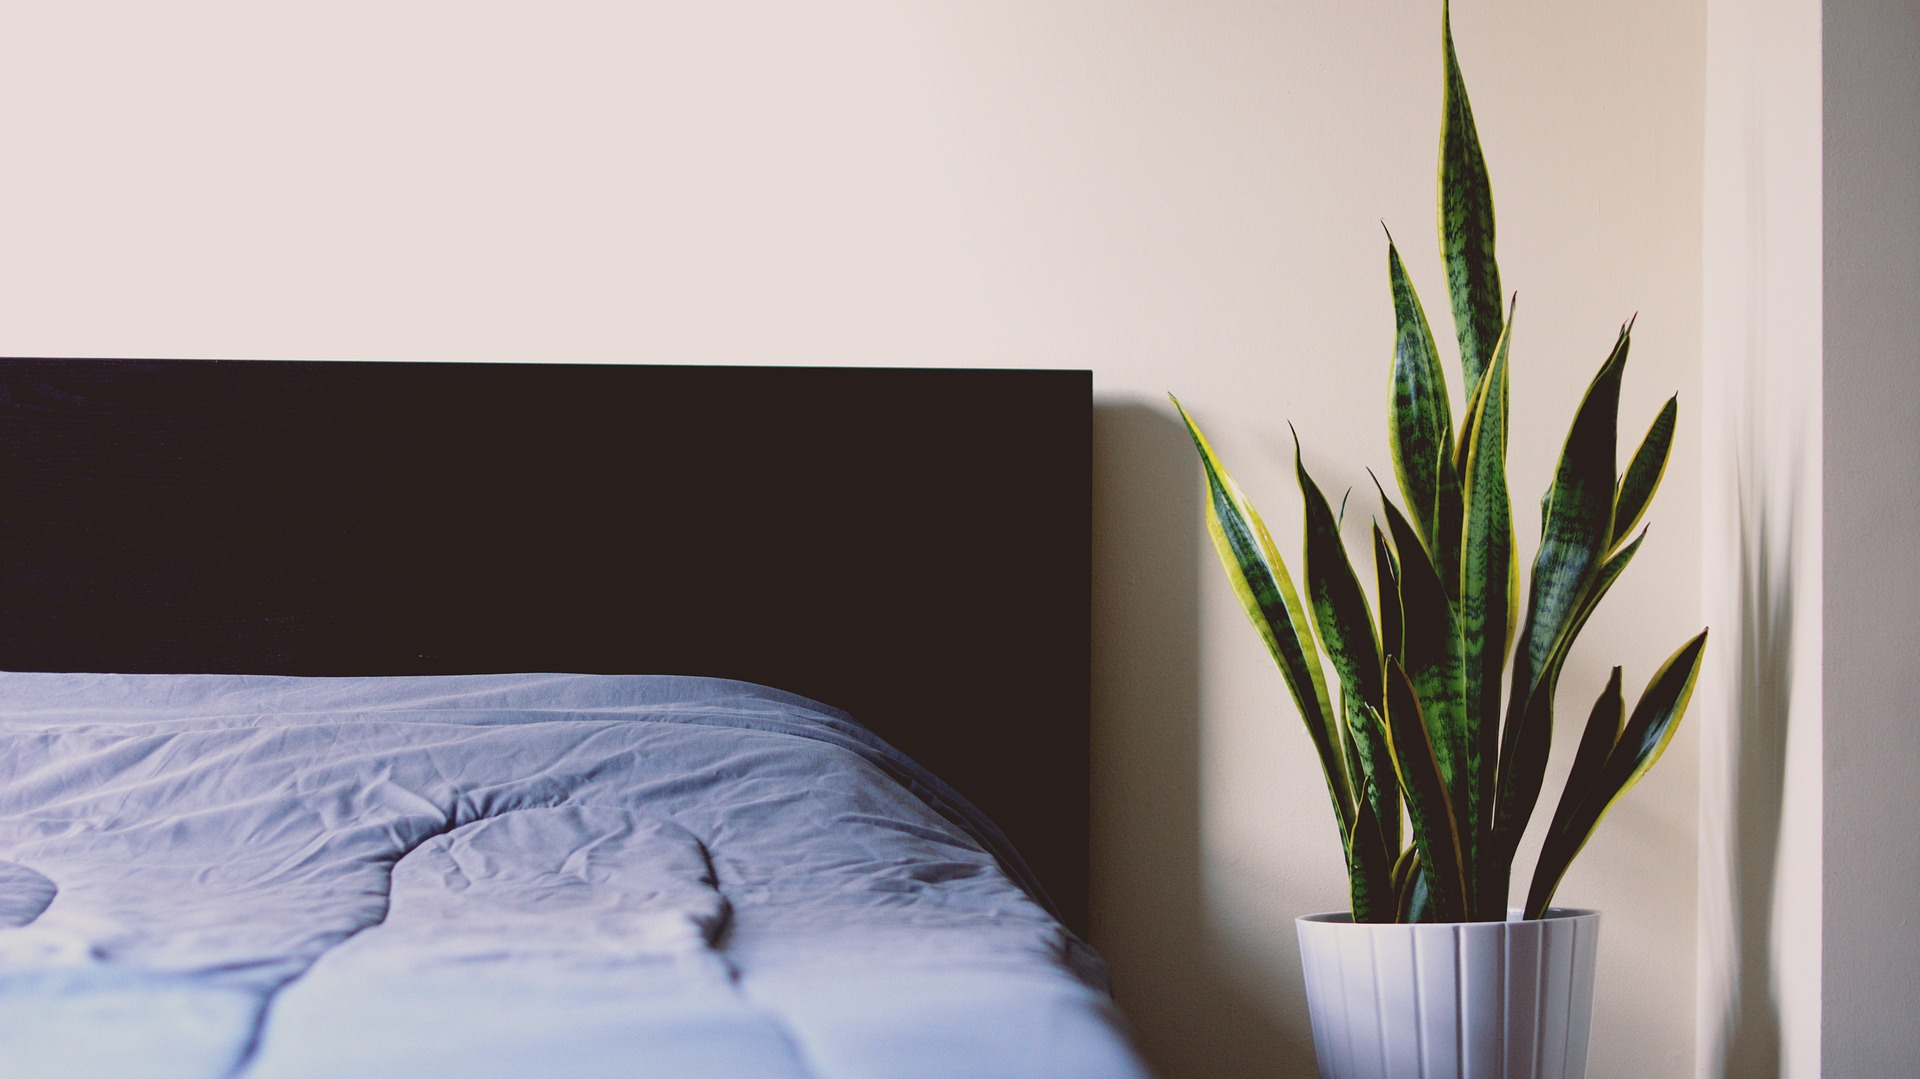 Bed_with_plant.jpg